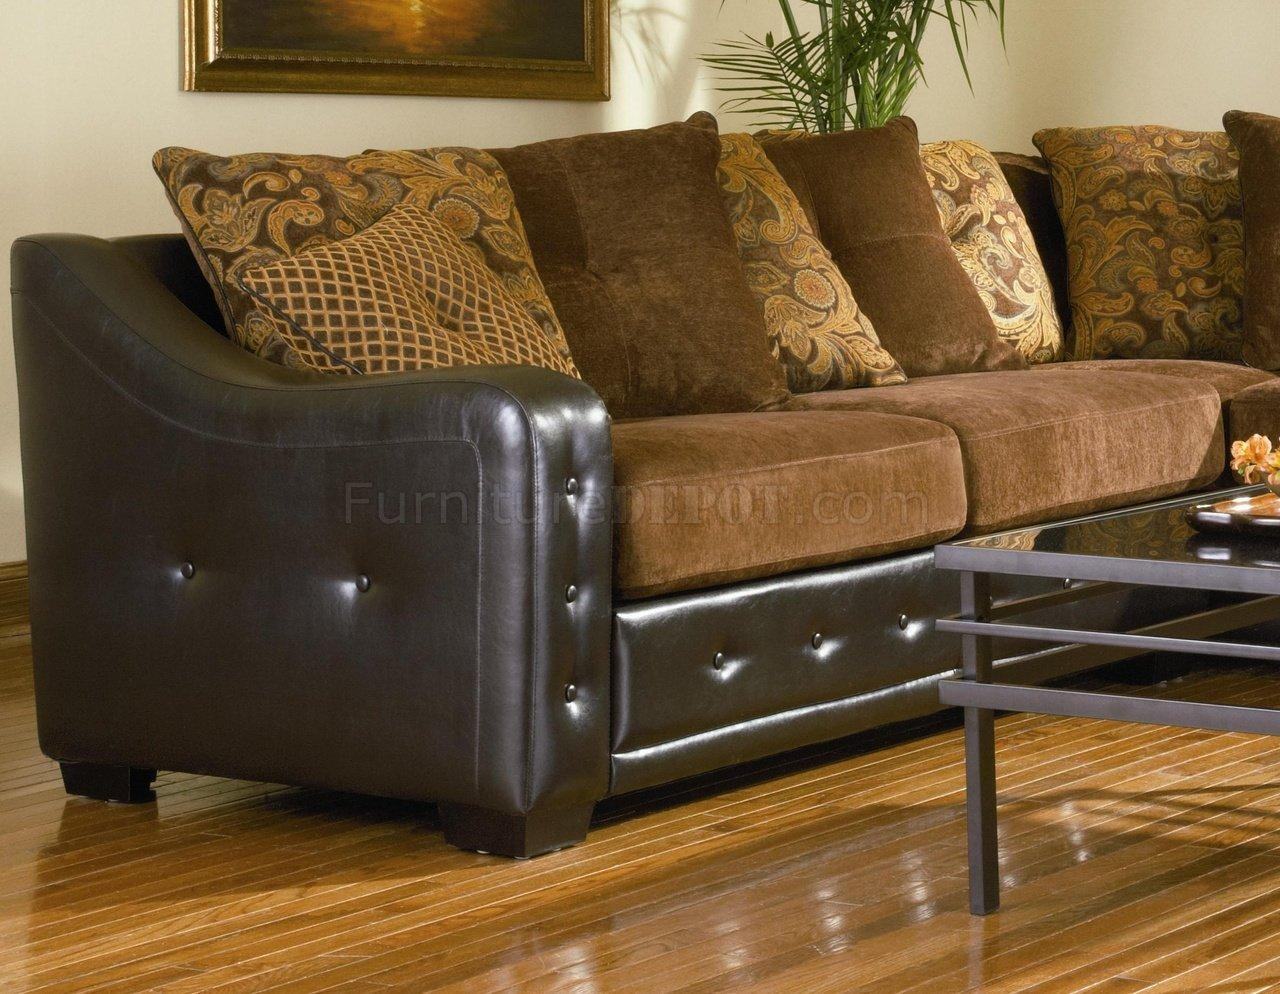 Sectional Sofa 503001 Chocolate Chenille/dark Brown Vinyl Base Regarding Chenille Sectional Sofas (Image 15 of 20)